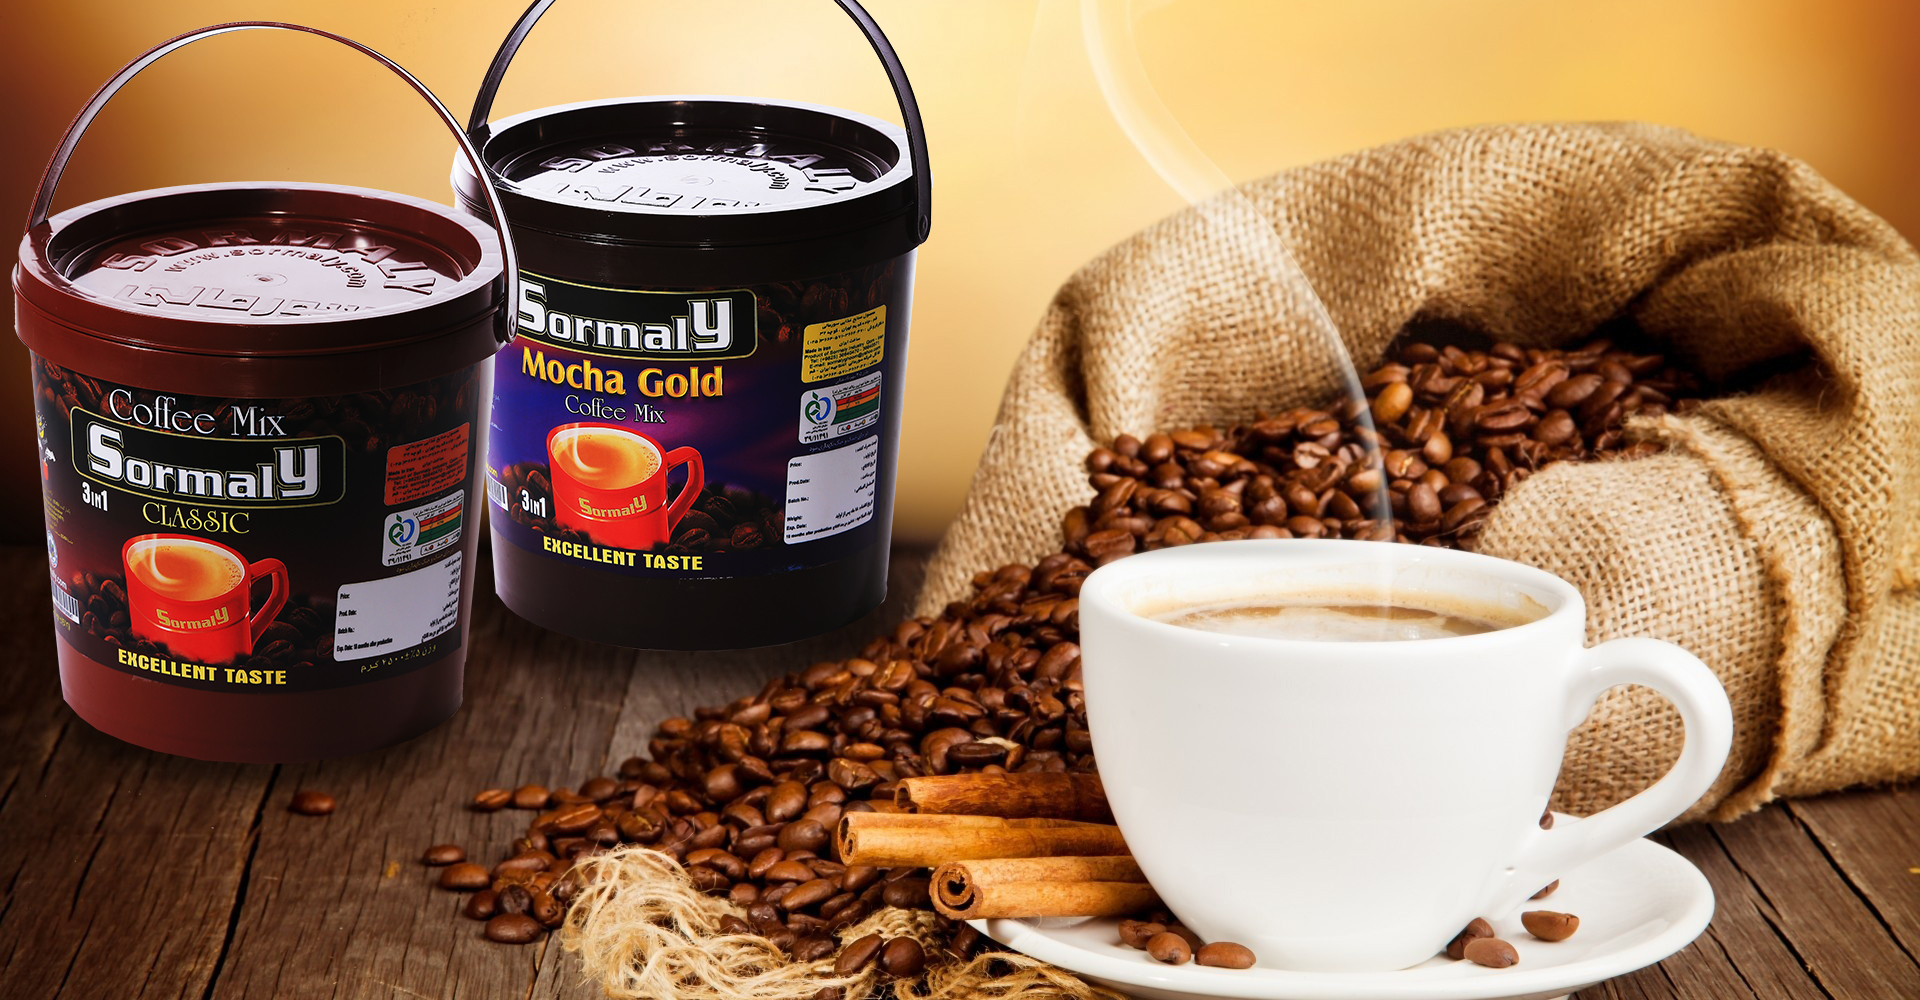 The true taste of coffee with Sormaly experience